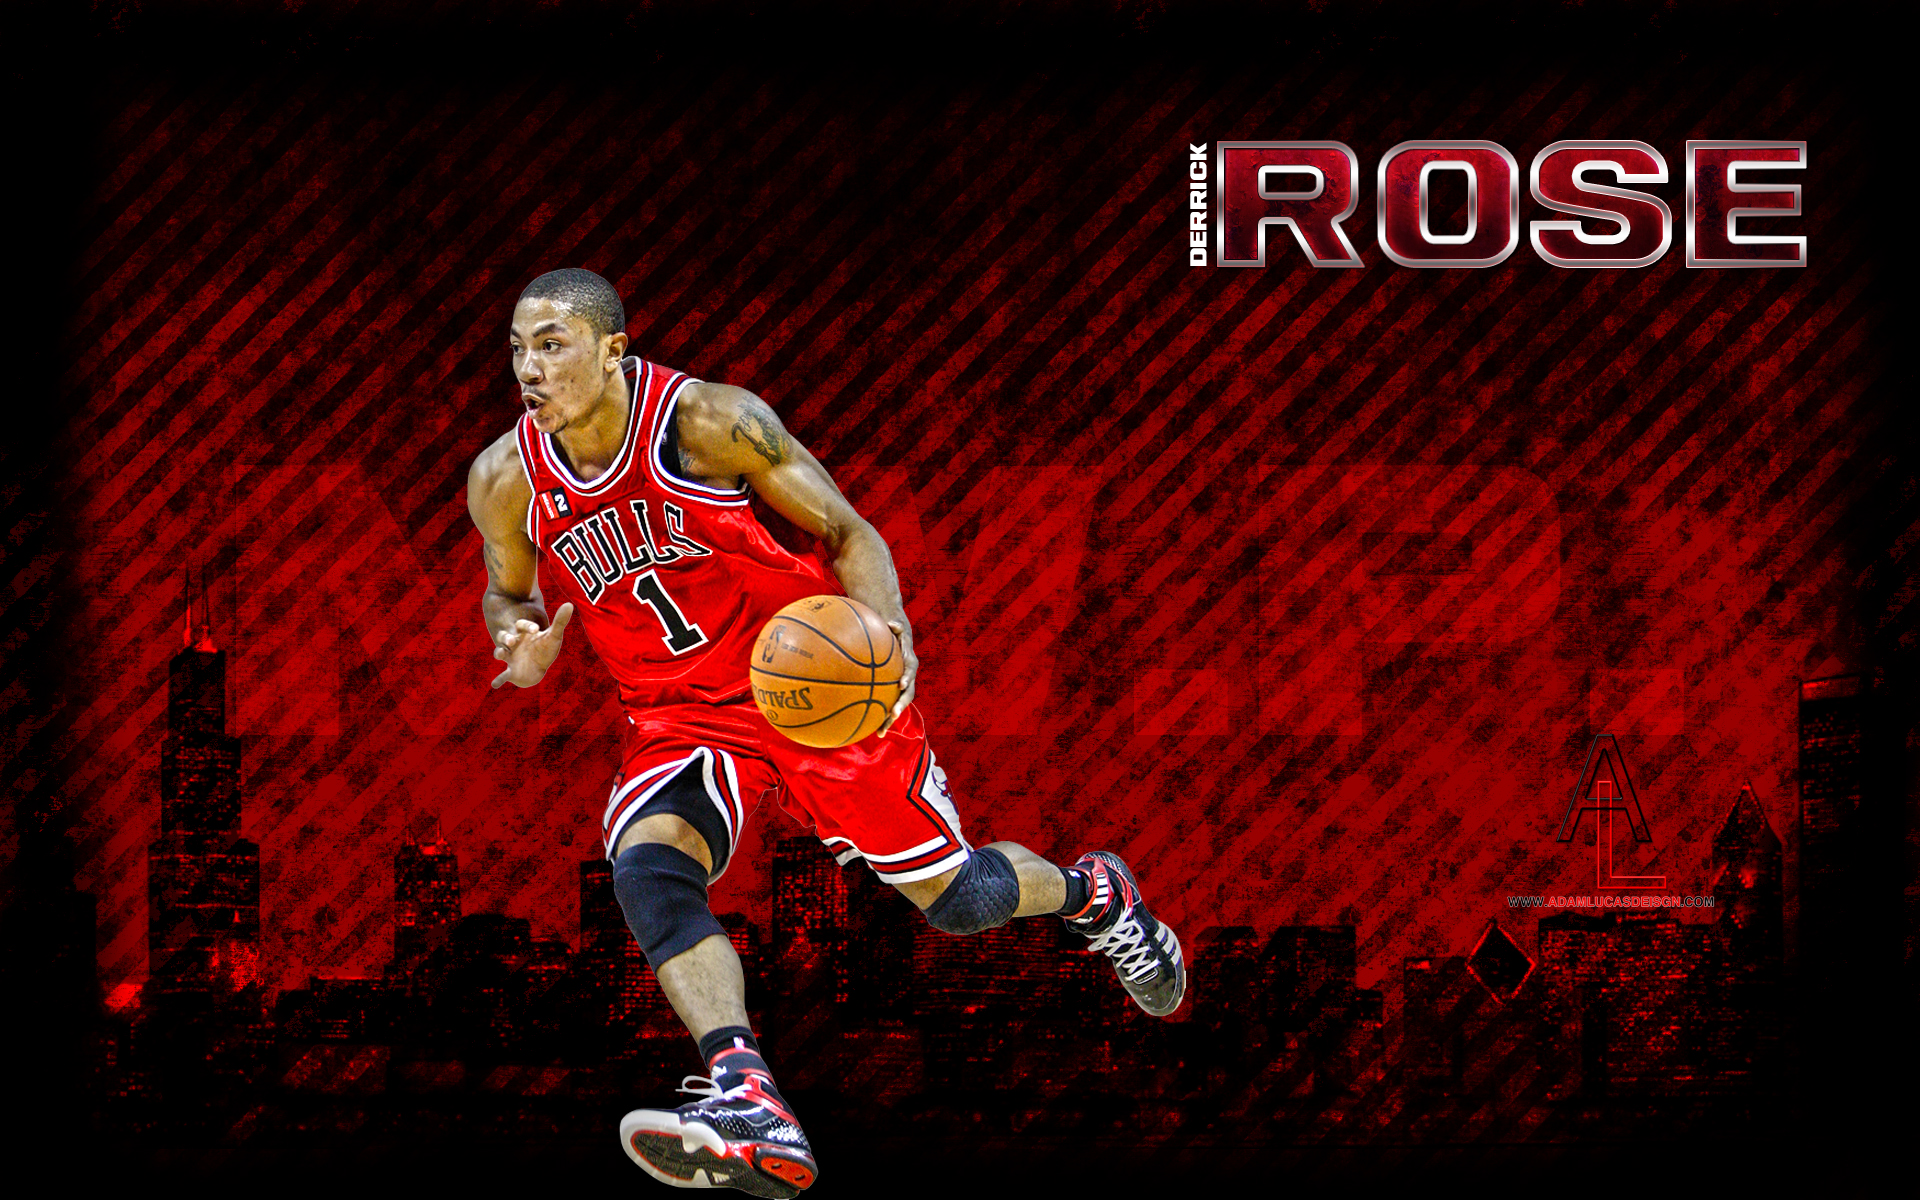 Nba wallpapers adam lucas designs - Derrick rose cavs wallpaper ...